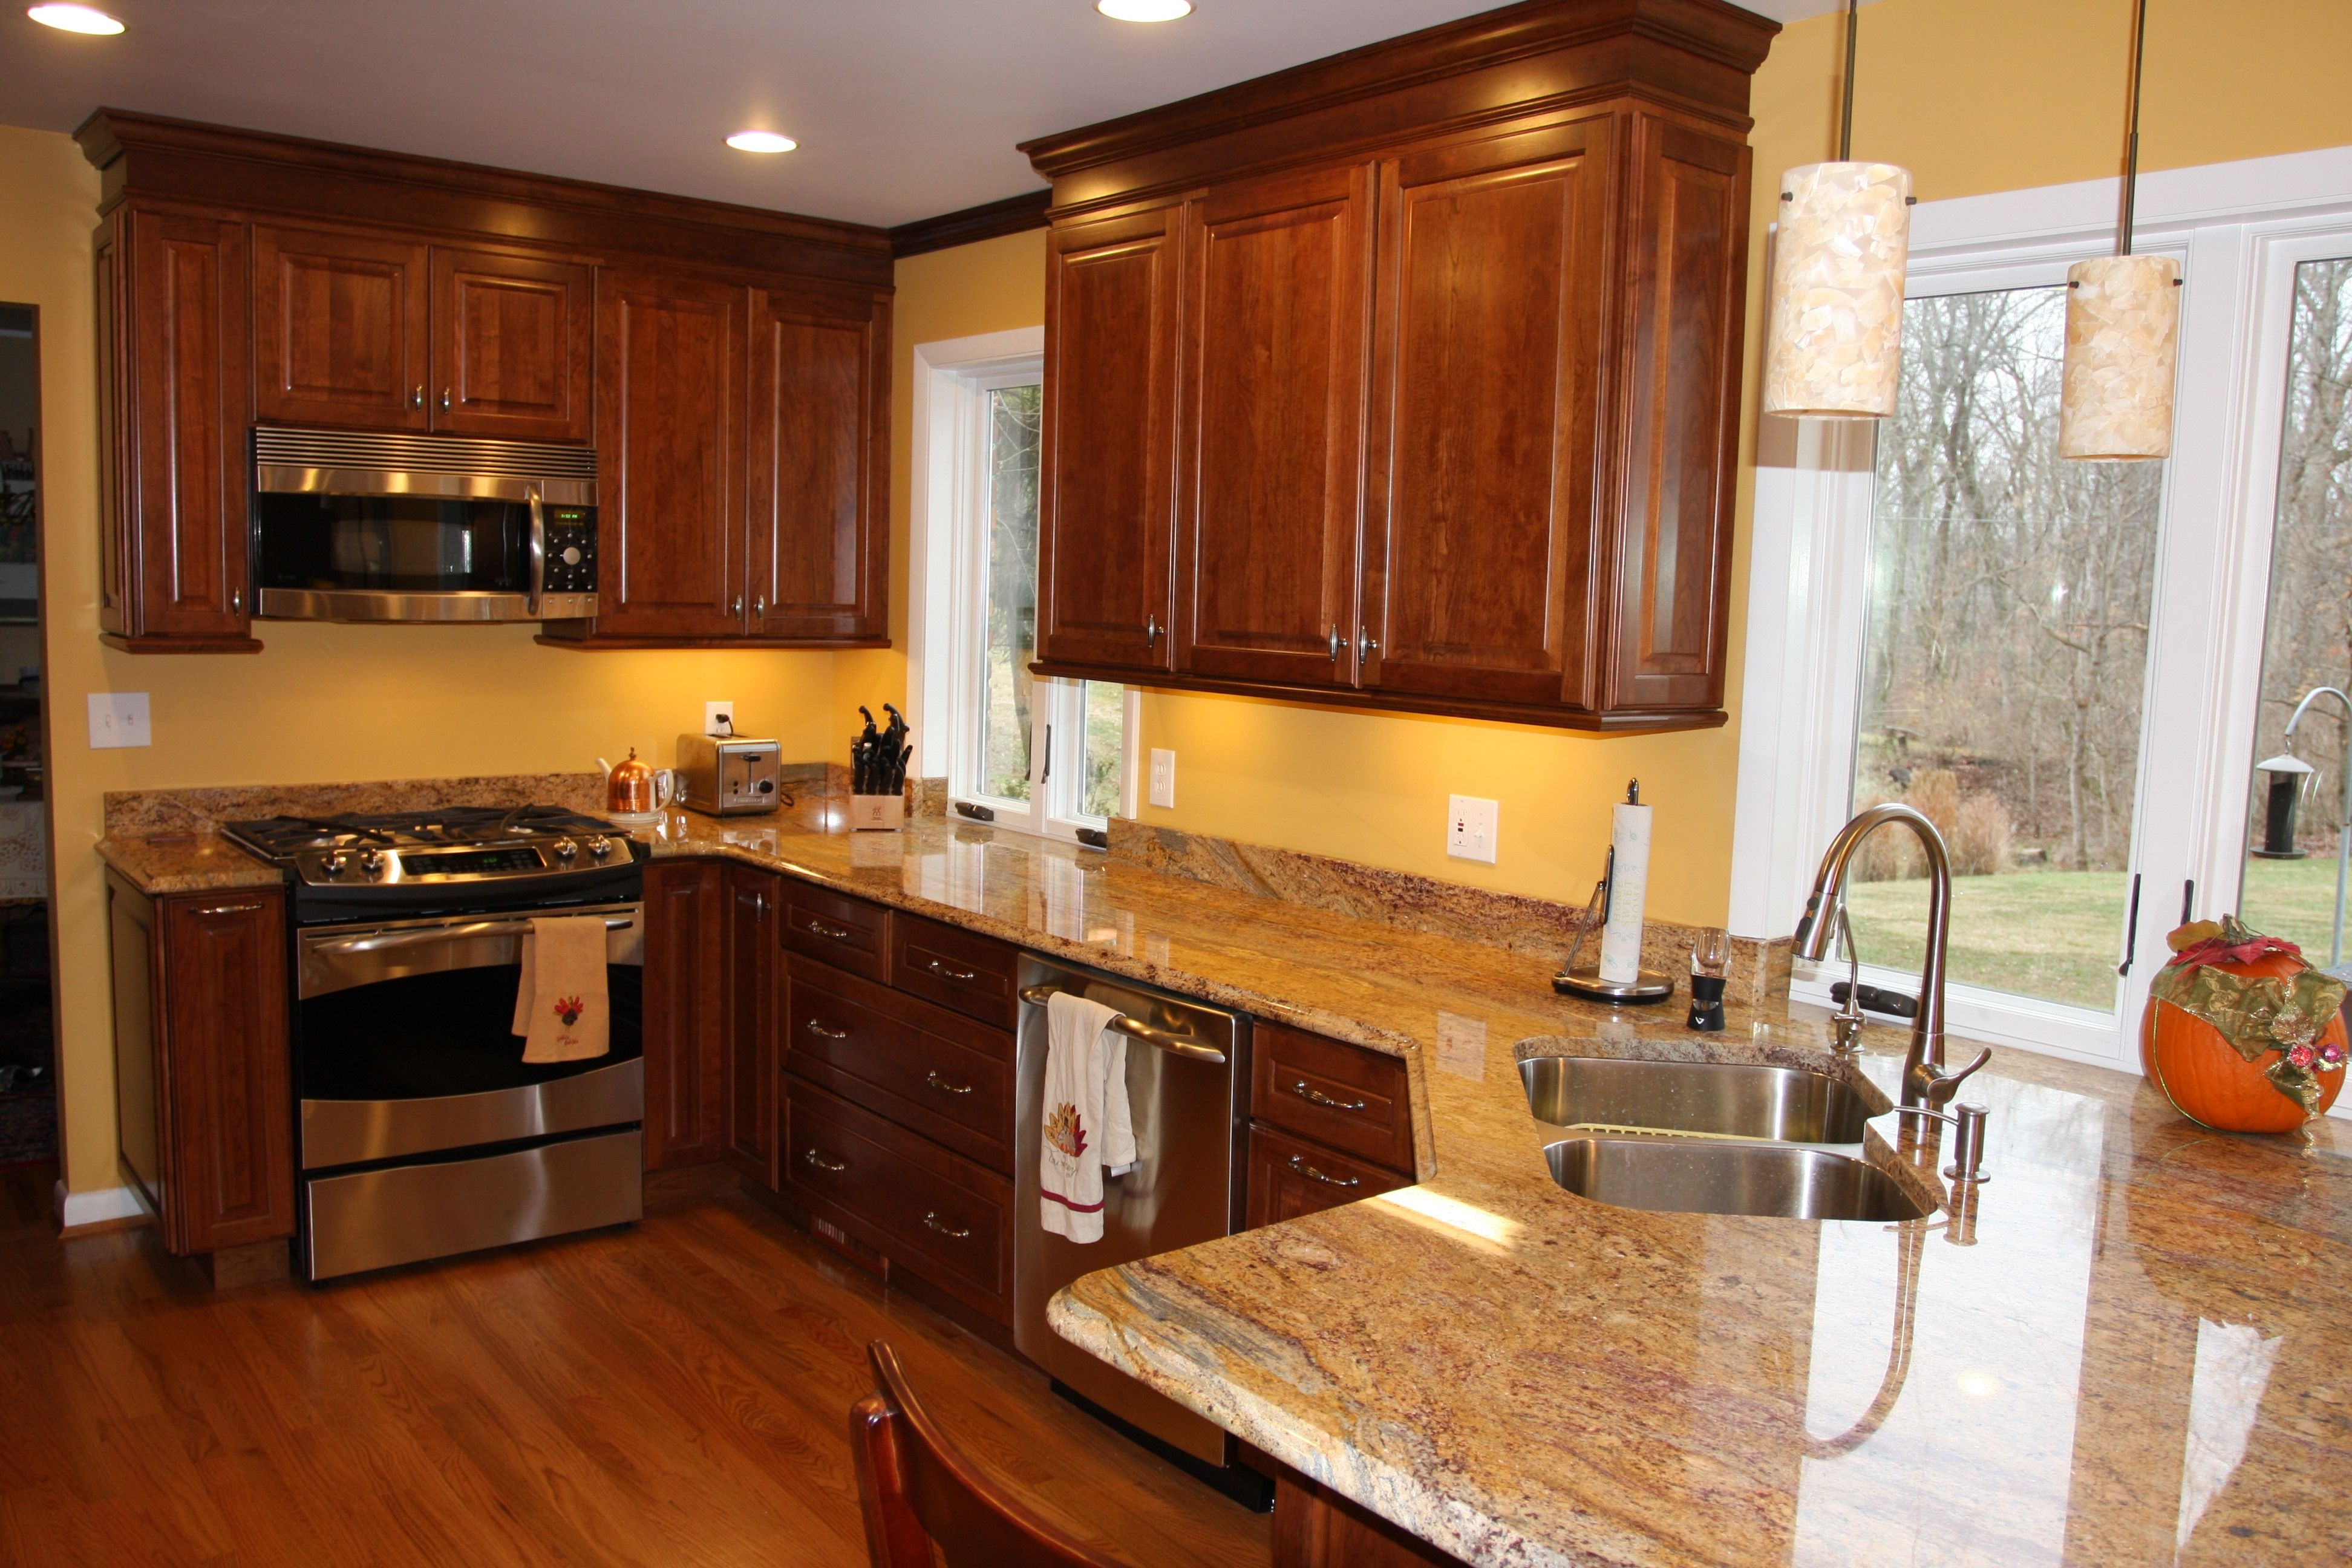 kitchen wall color with dark oak cabinets with images cherry cabinets kitchen wall color on kitchen ideas with dark cabinets id=18732